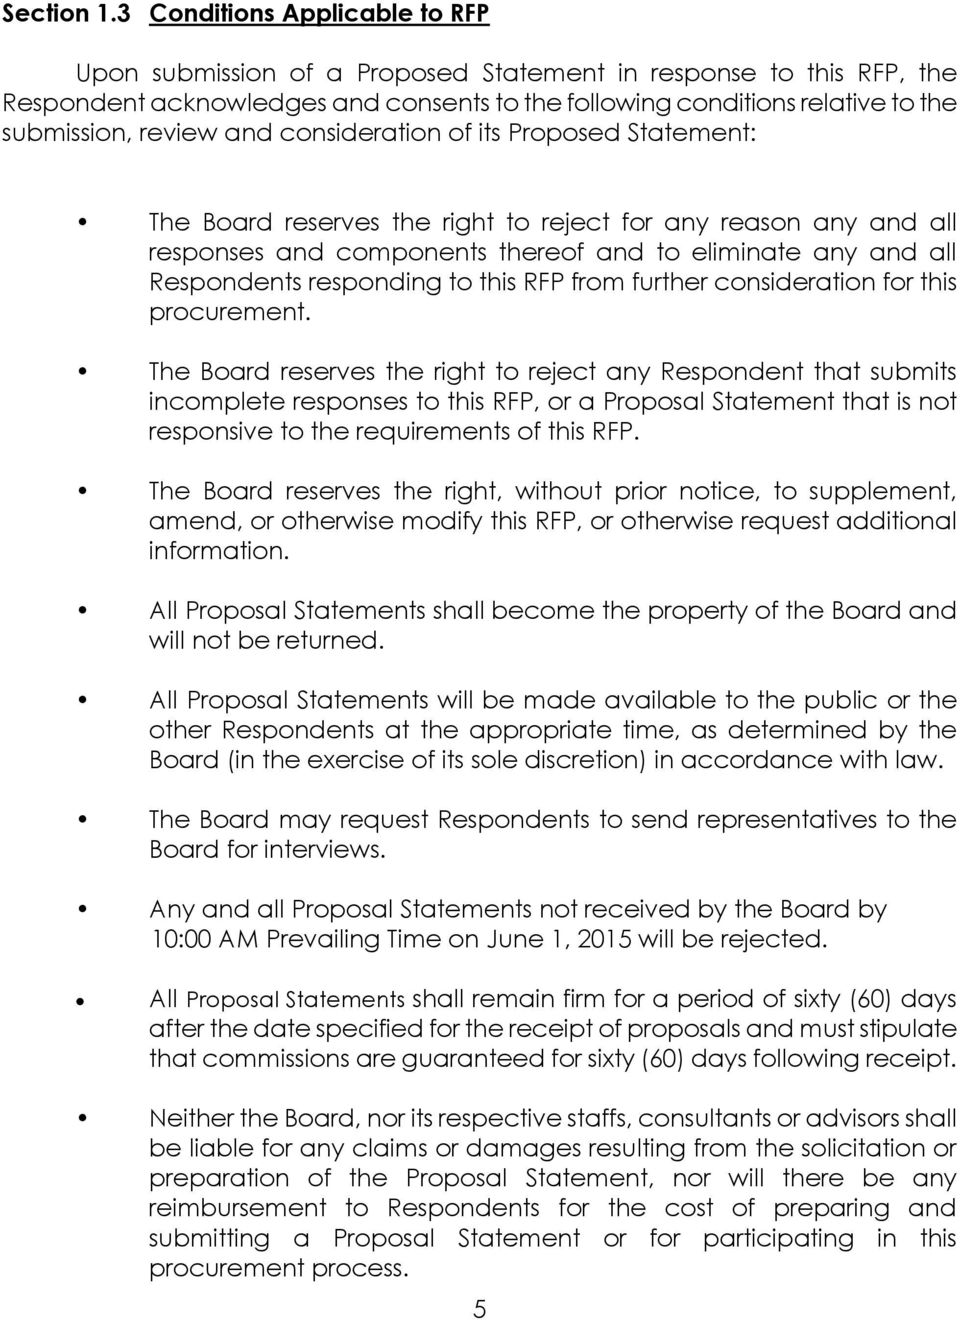 and consideration of its Proposed Statement: The Board reserves the right to reject for any reason any and all responses and components thereof and to eliminate any and all Respondents responding to